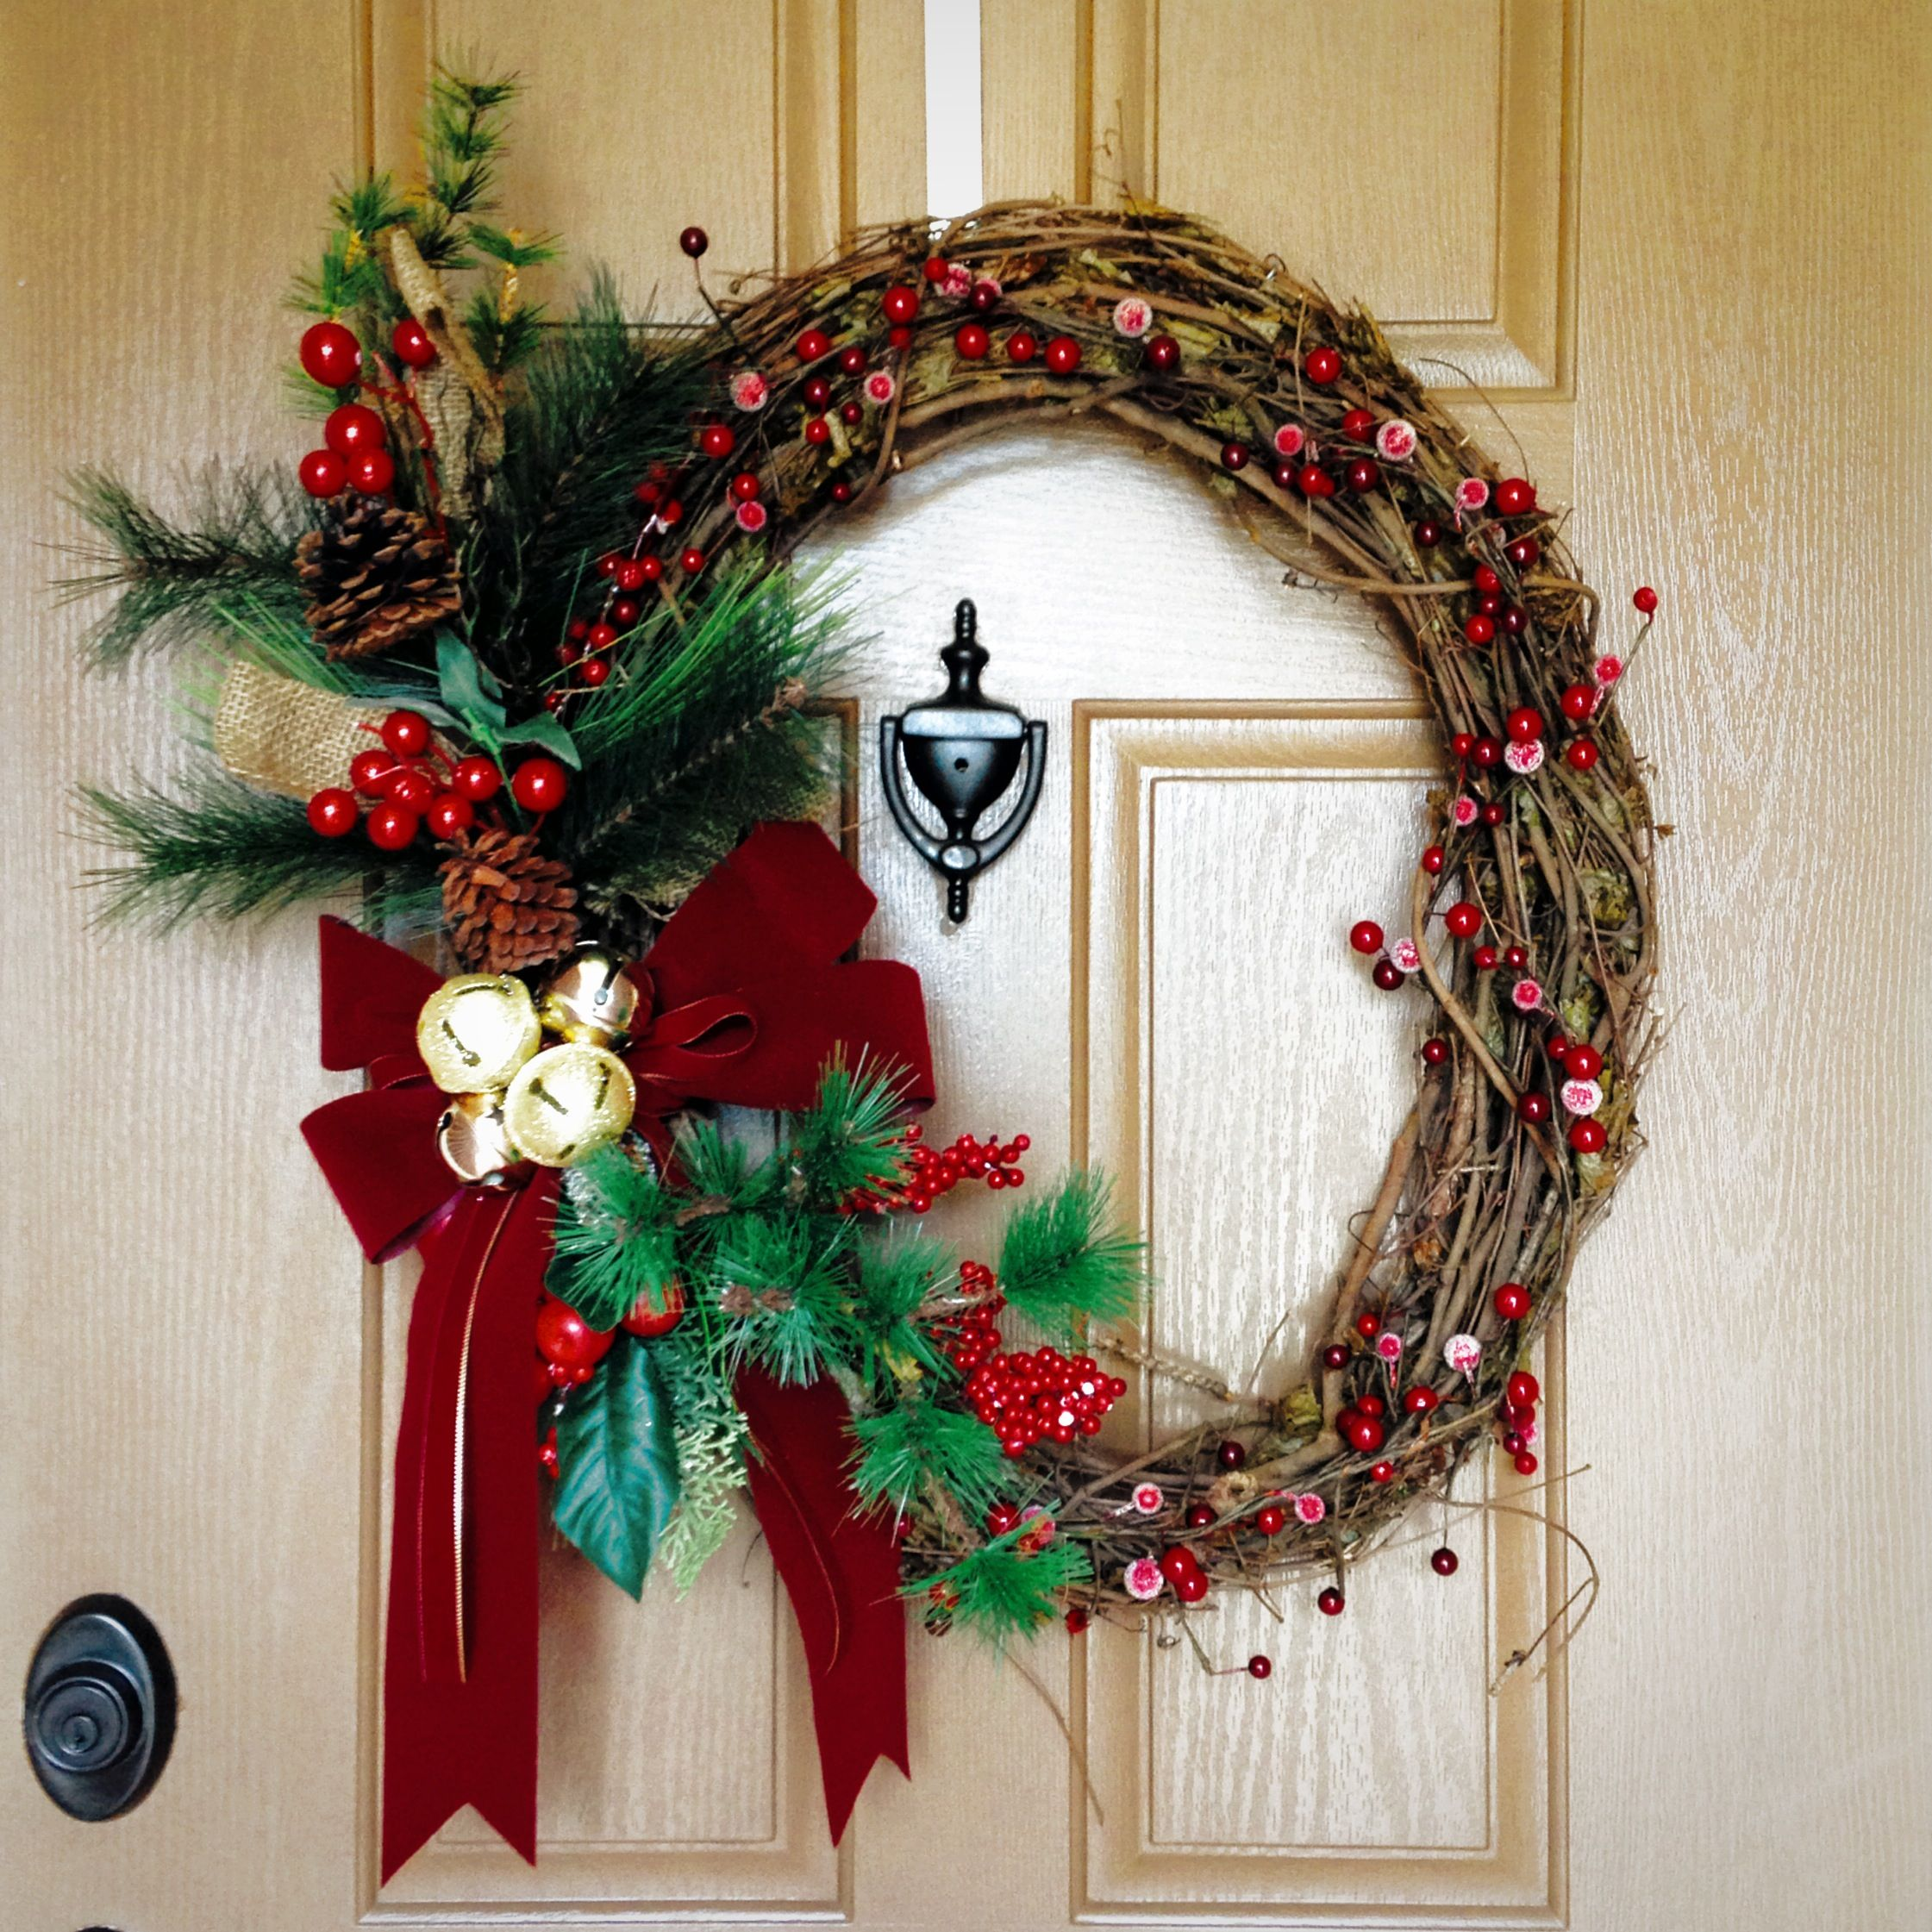 My Christmas wreath (With images) | Christmas wreaths ...